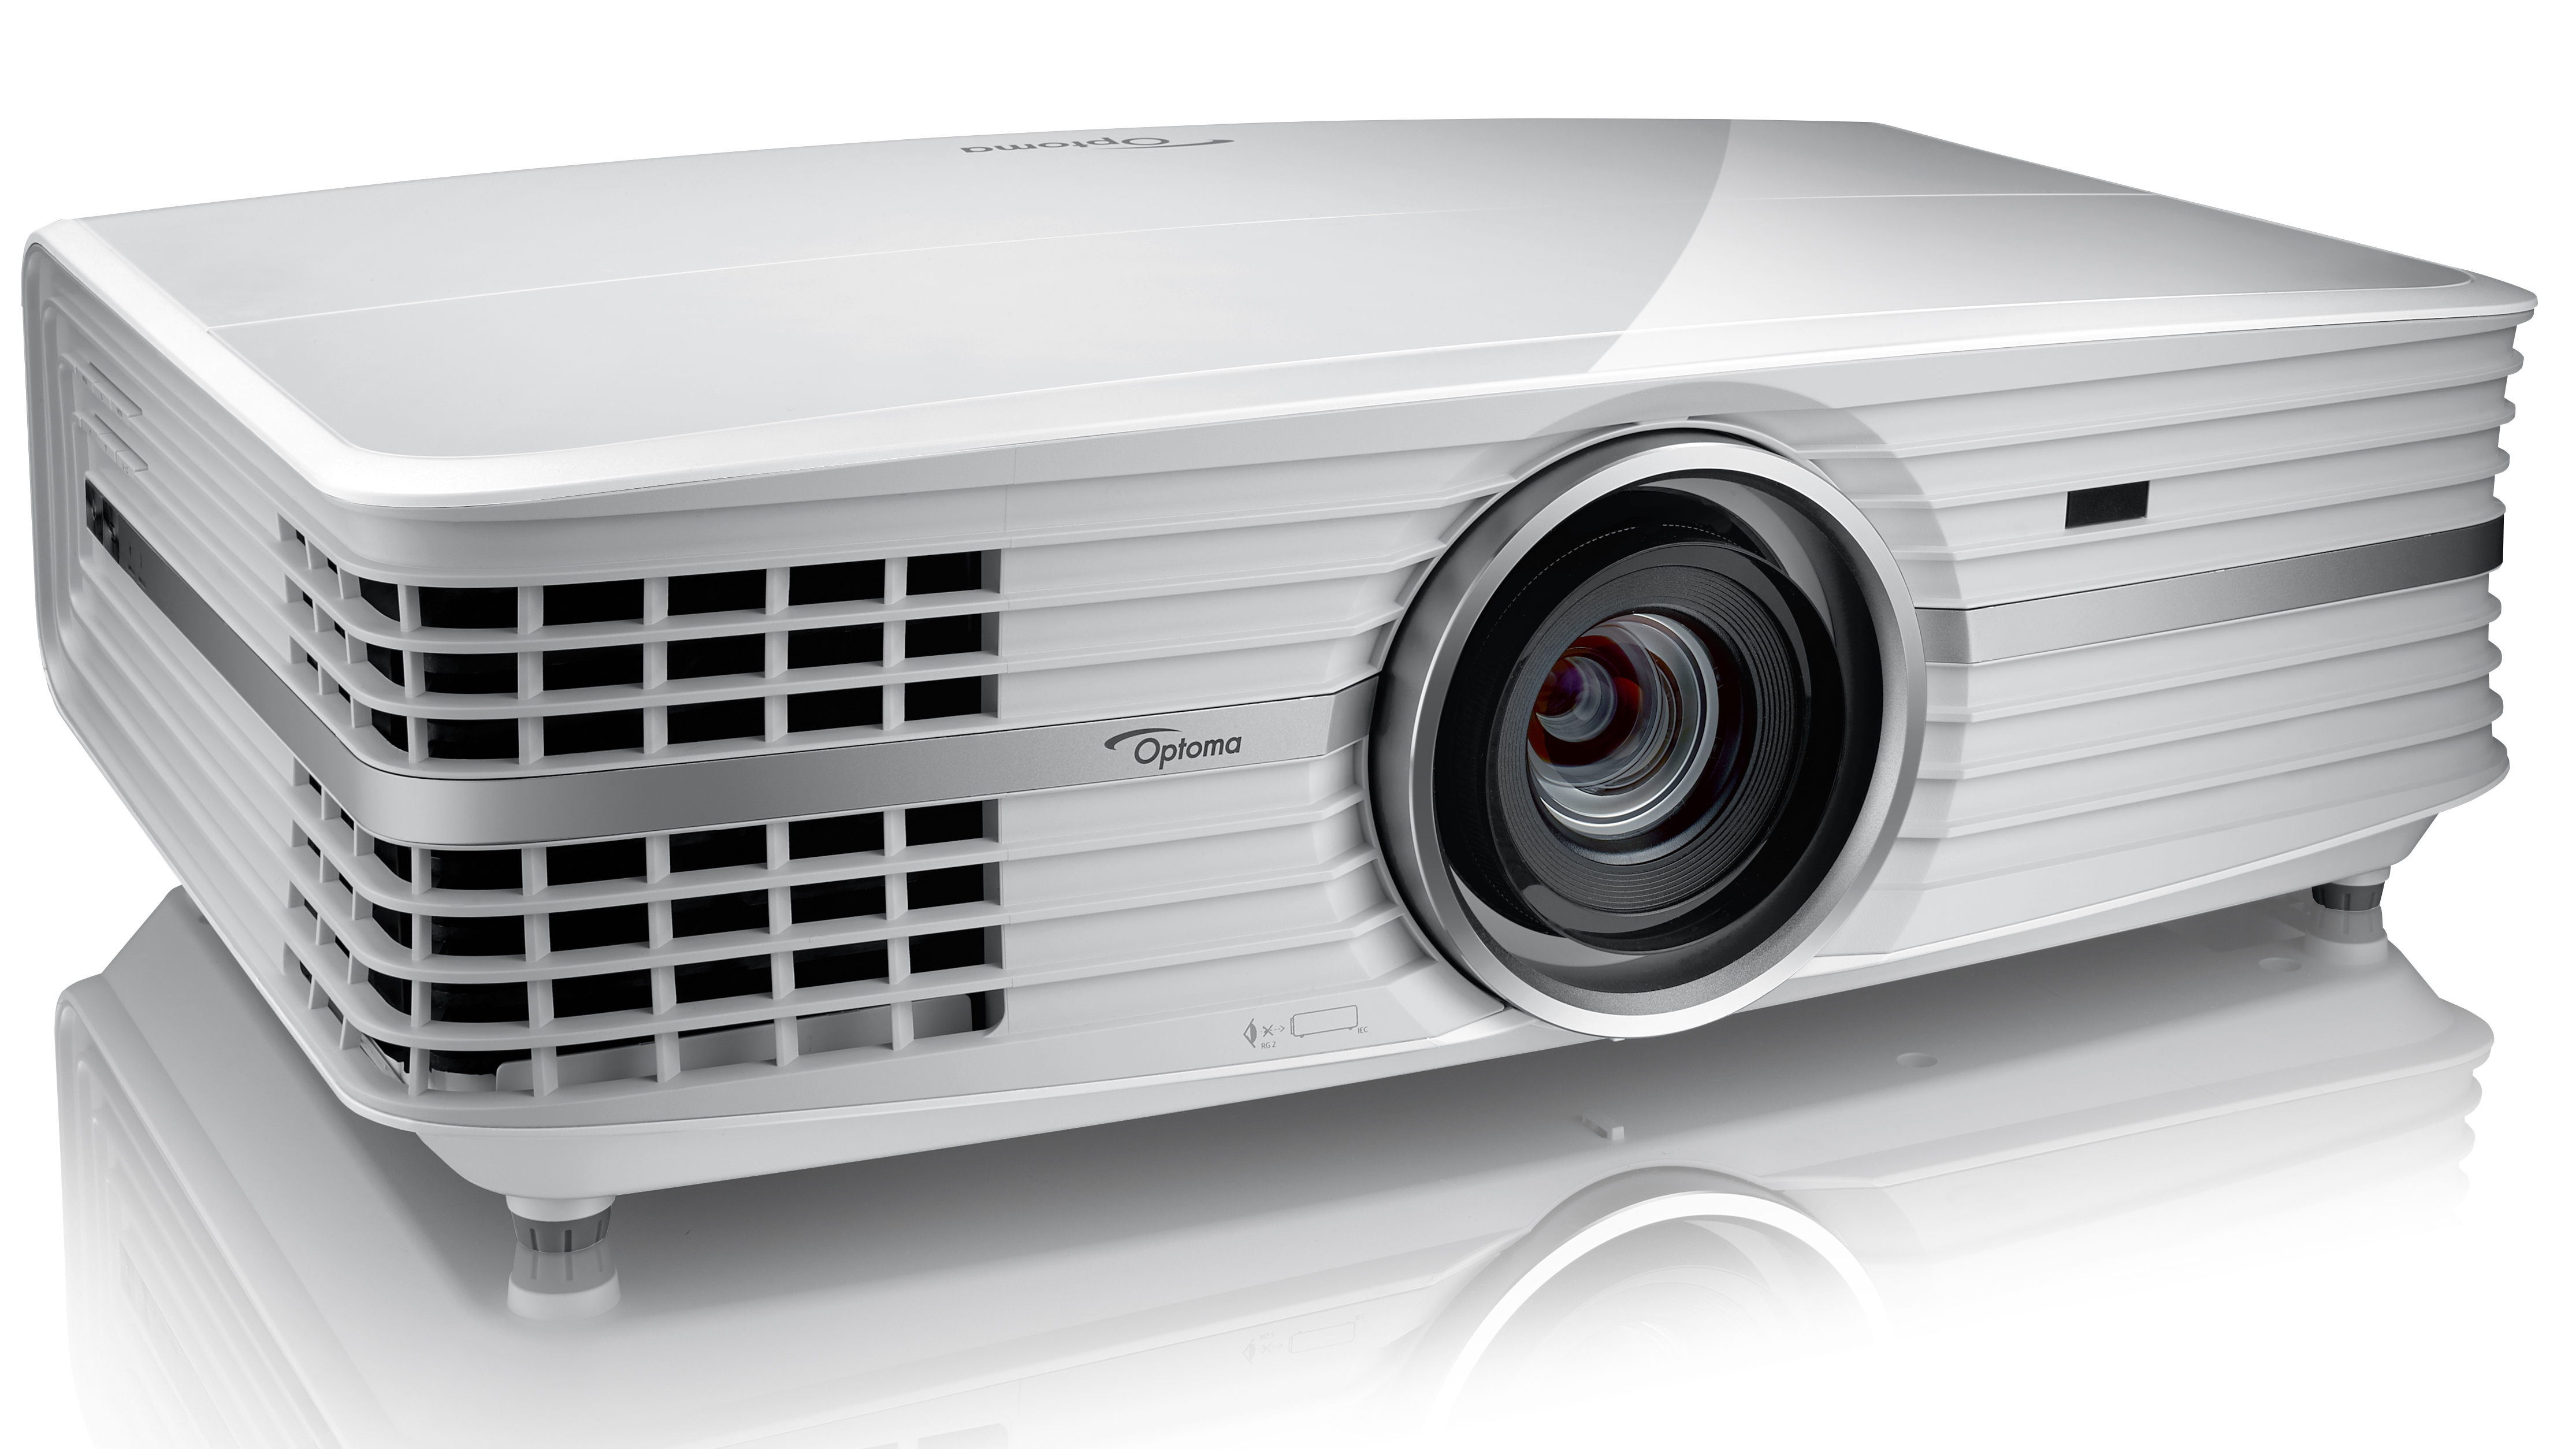 vorPntzkaYnk3GDcno4nWB - The best projector prices and sales in February 2019